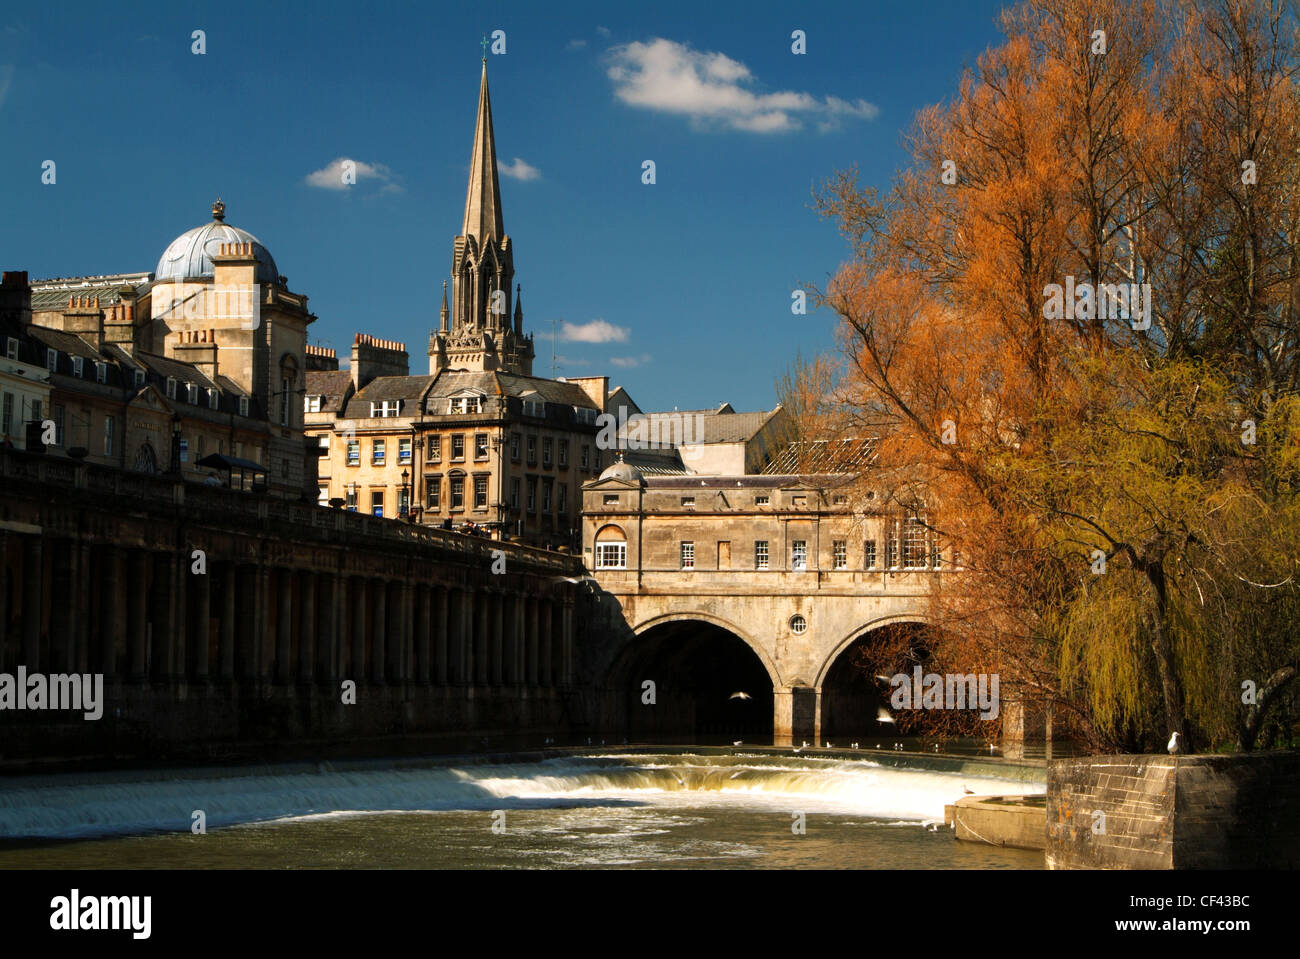 The River Avon in front of Pulteney Bridge and Bath city beyond. - Stock Image